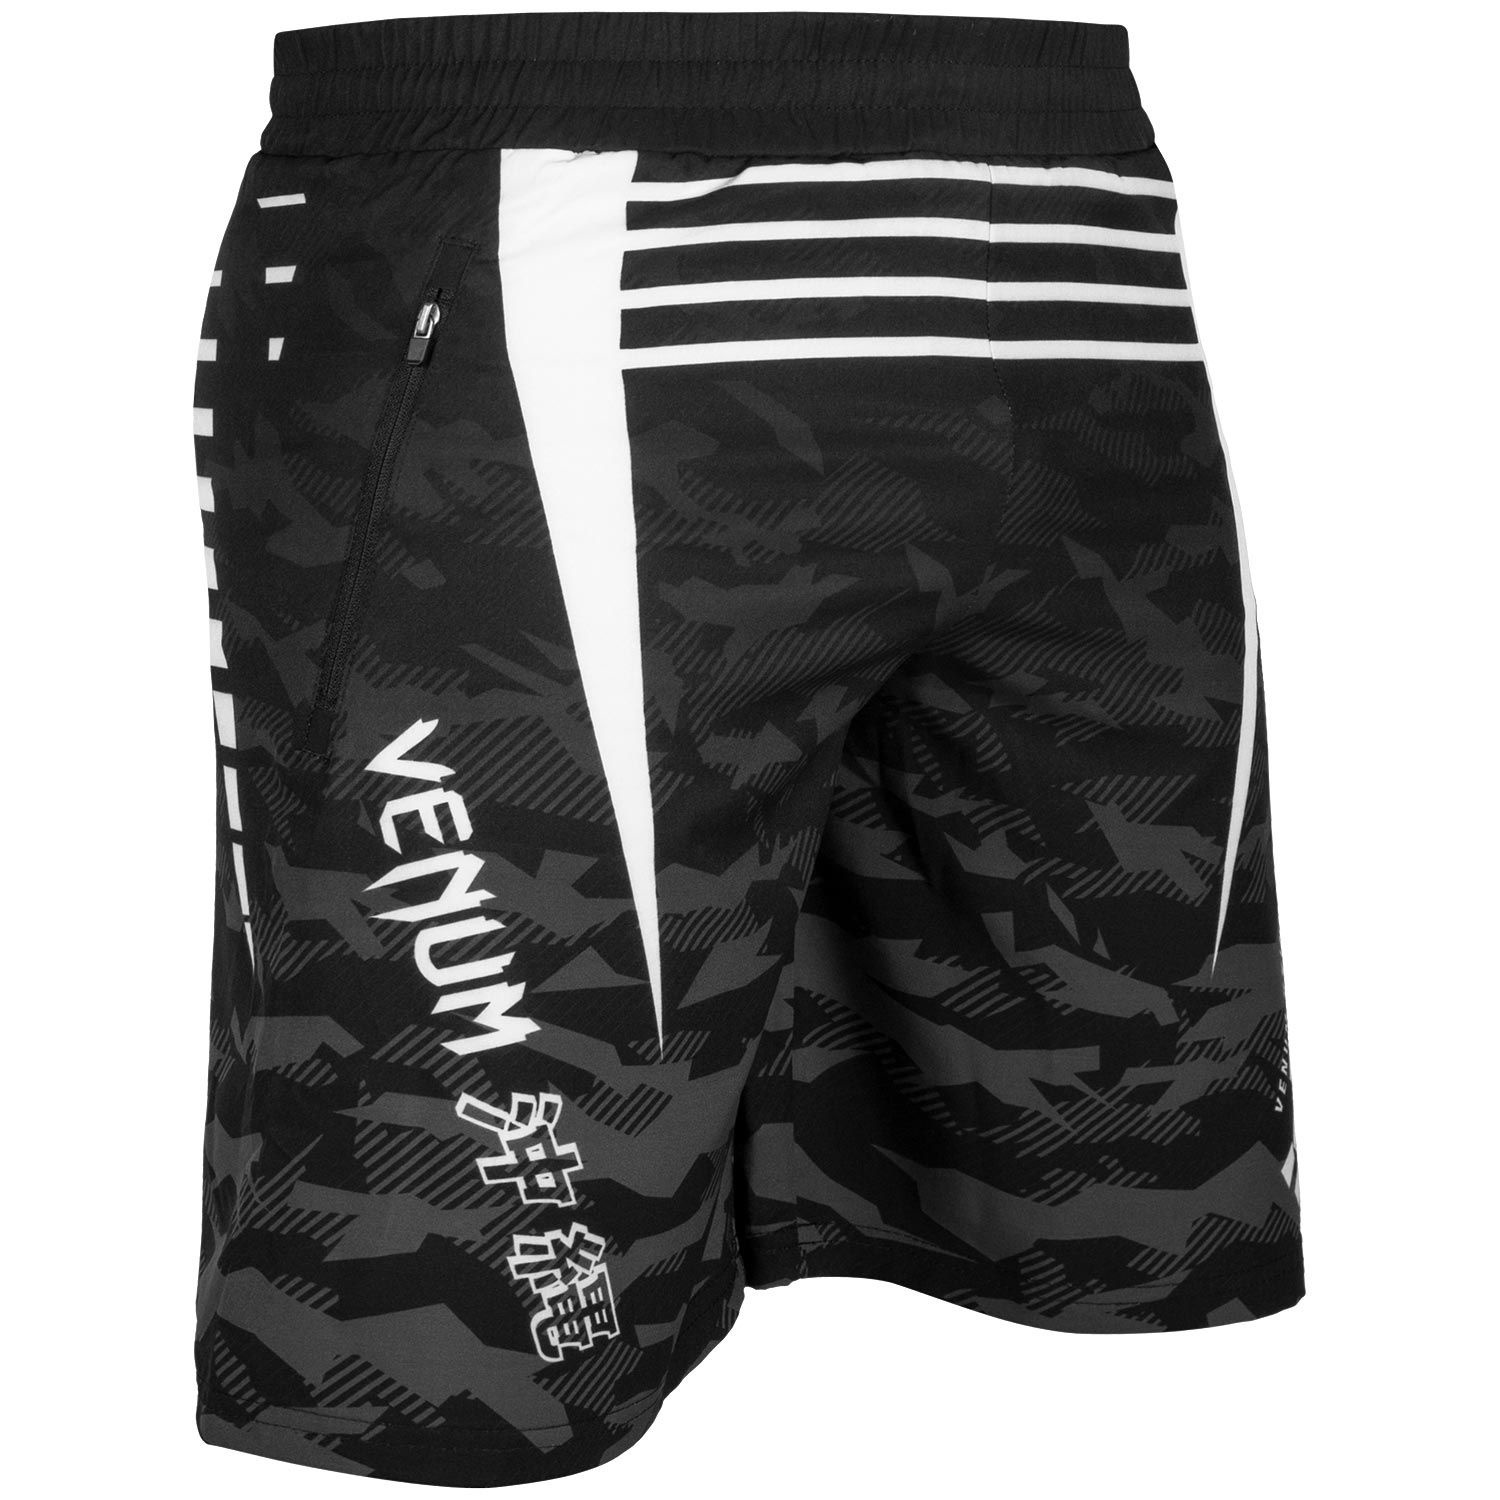 Venum Okinawa 2.0 Training Shorts Black//White